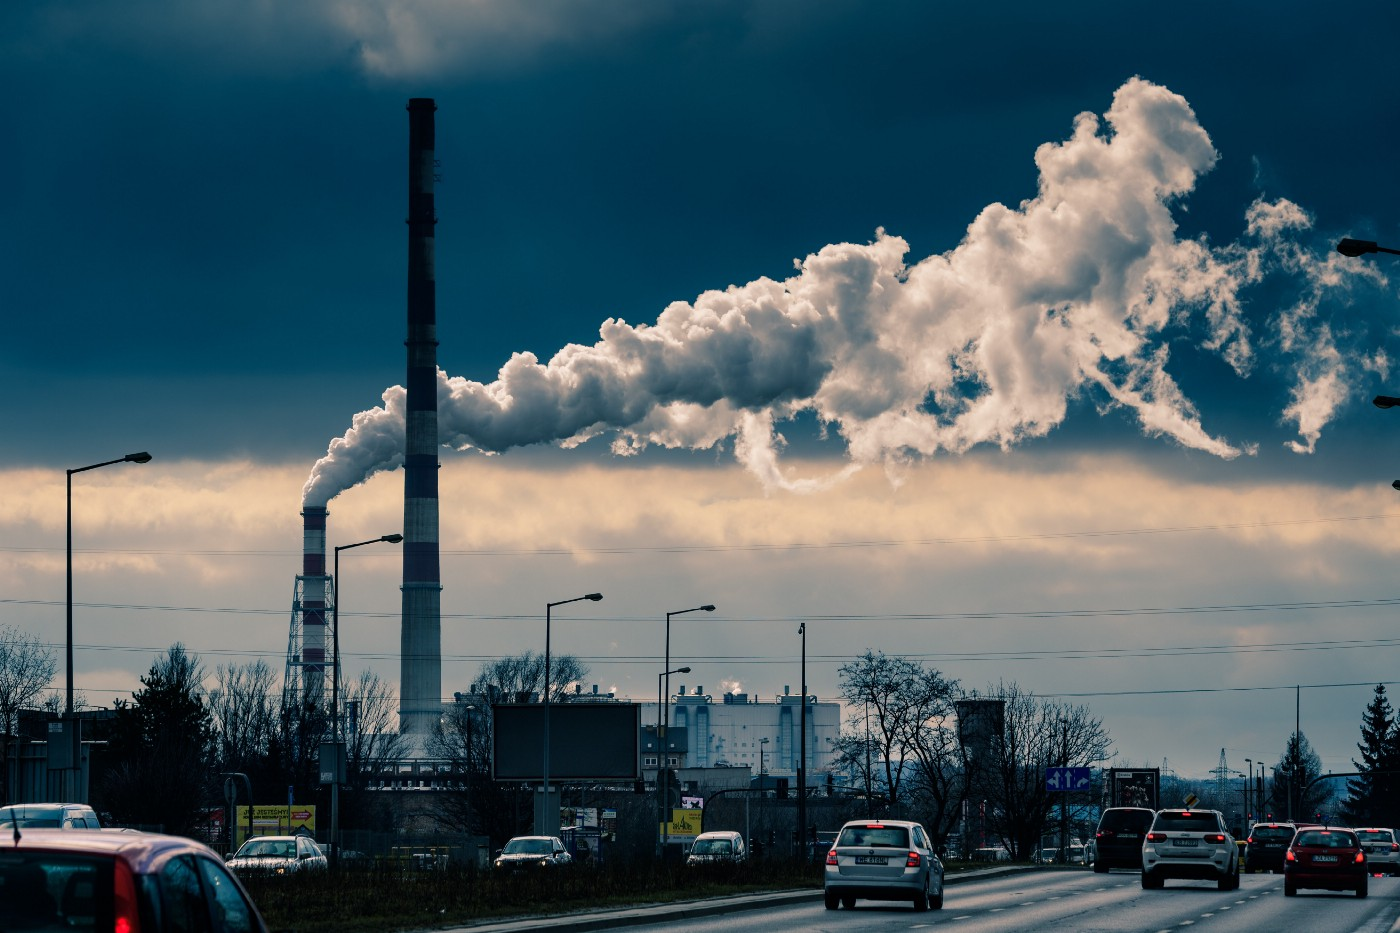 Two tall chimneys pouring thick white smoke over a busy motorway. Blue grey colours. Called Time to Change.